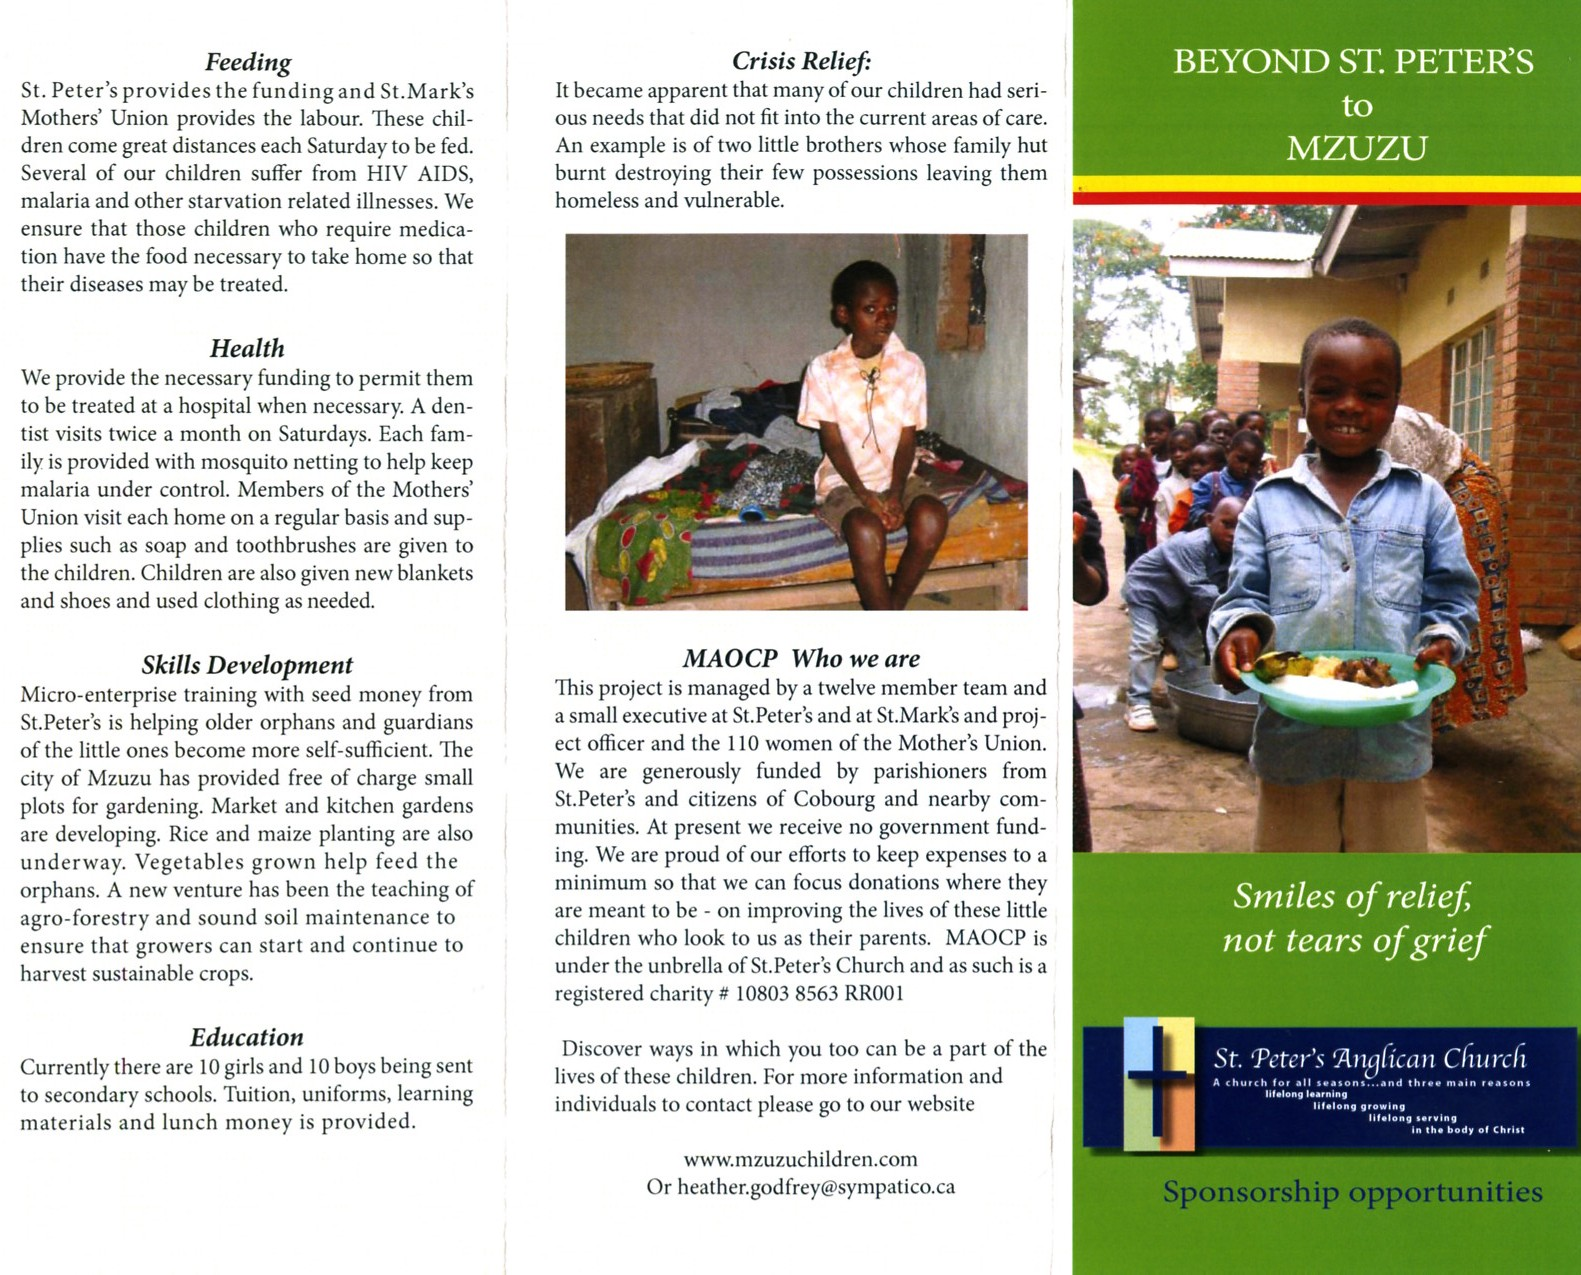 mzuzu children brochures